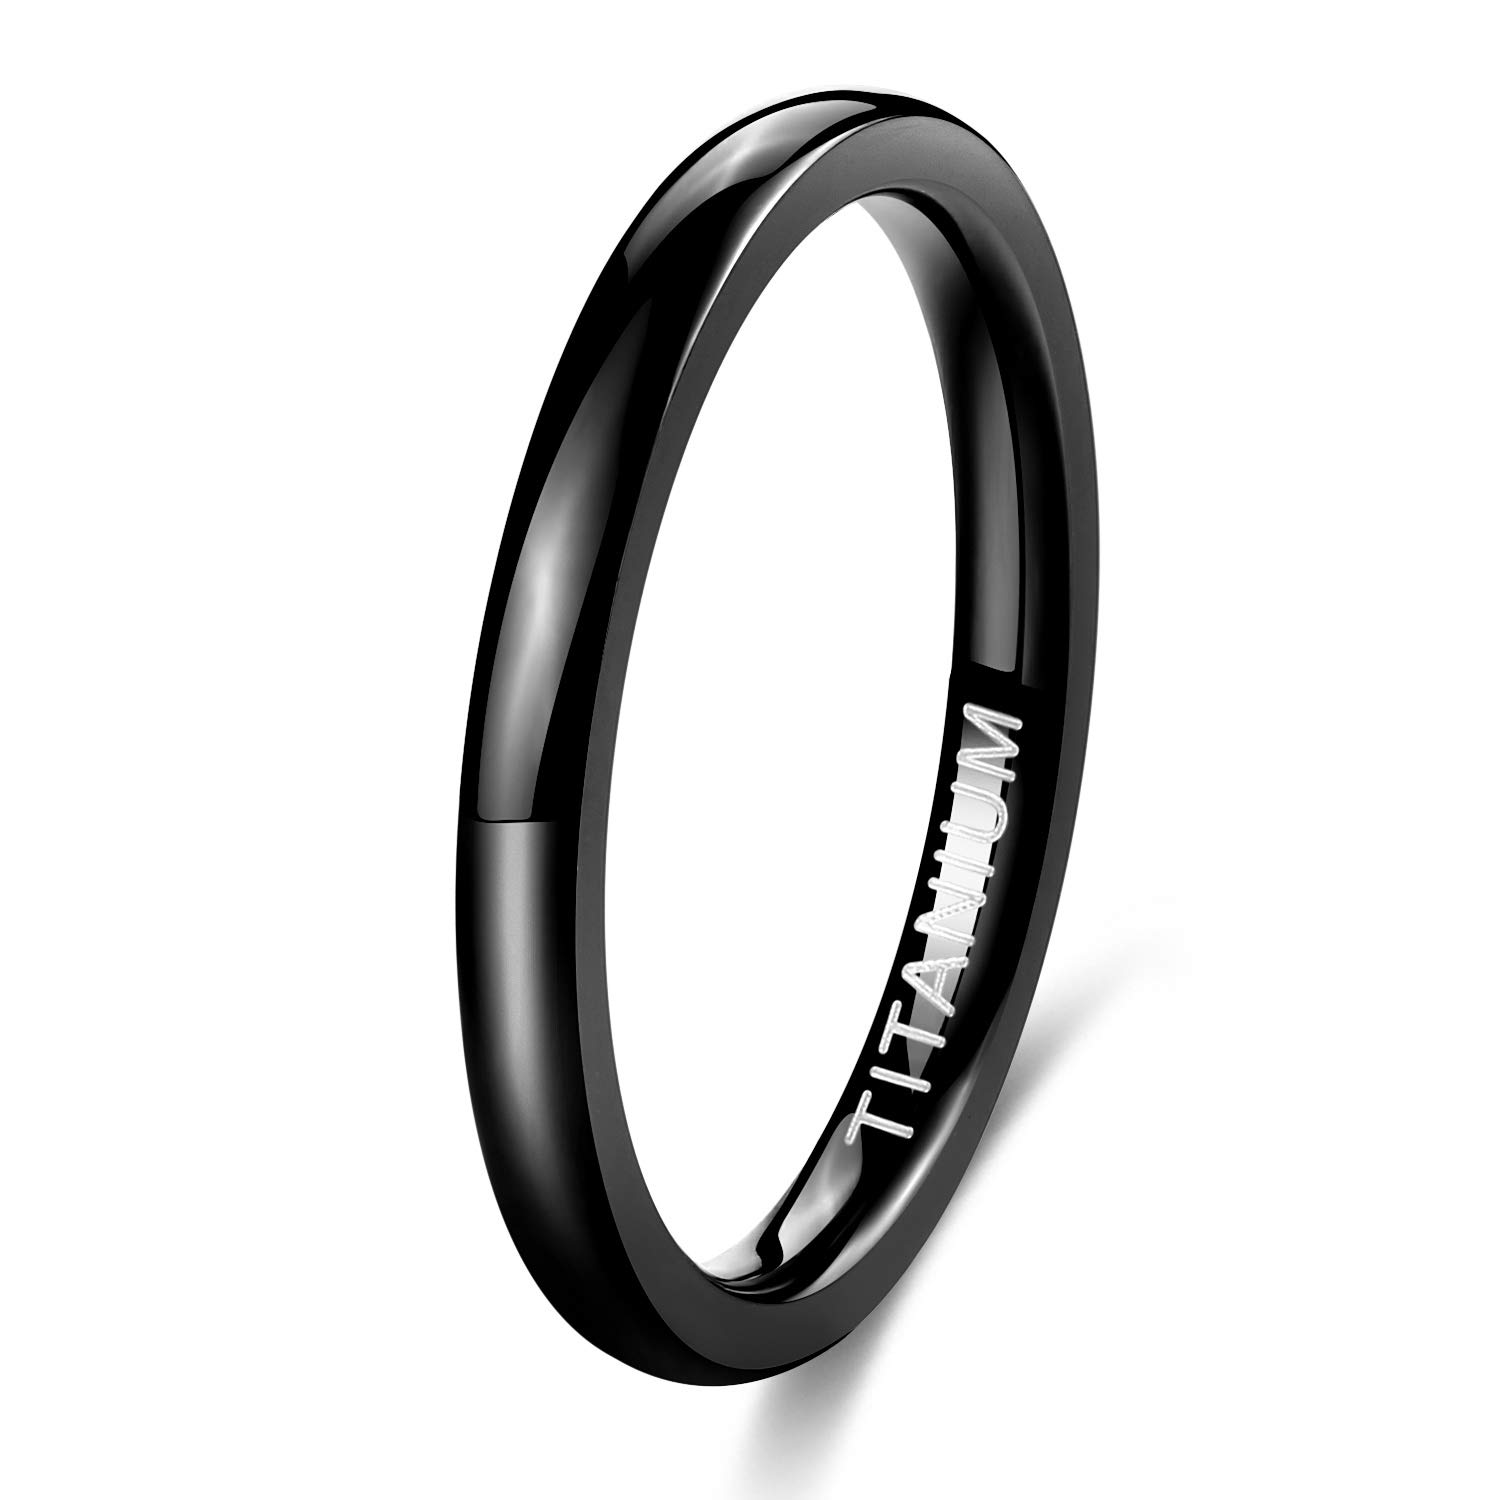 TIGRADE Black Titanium Ring 2mm 4mm 6mm 8mm Dome High Polished Wedding Band Size 4-15